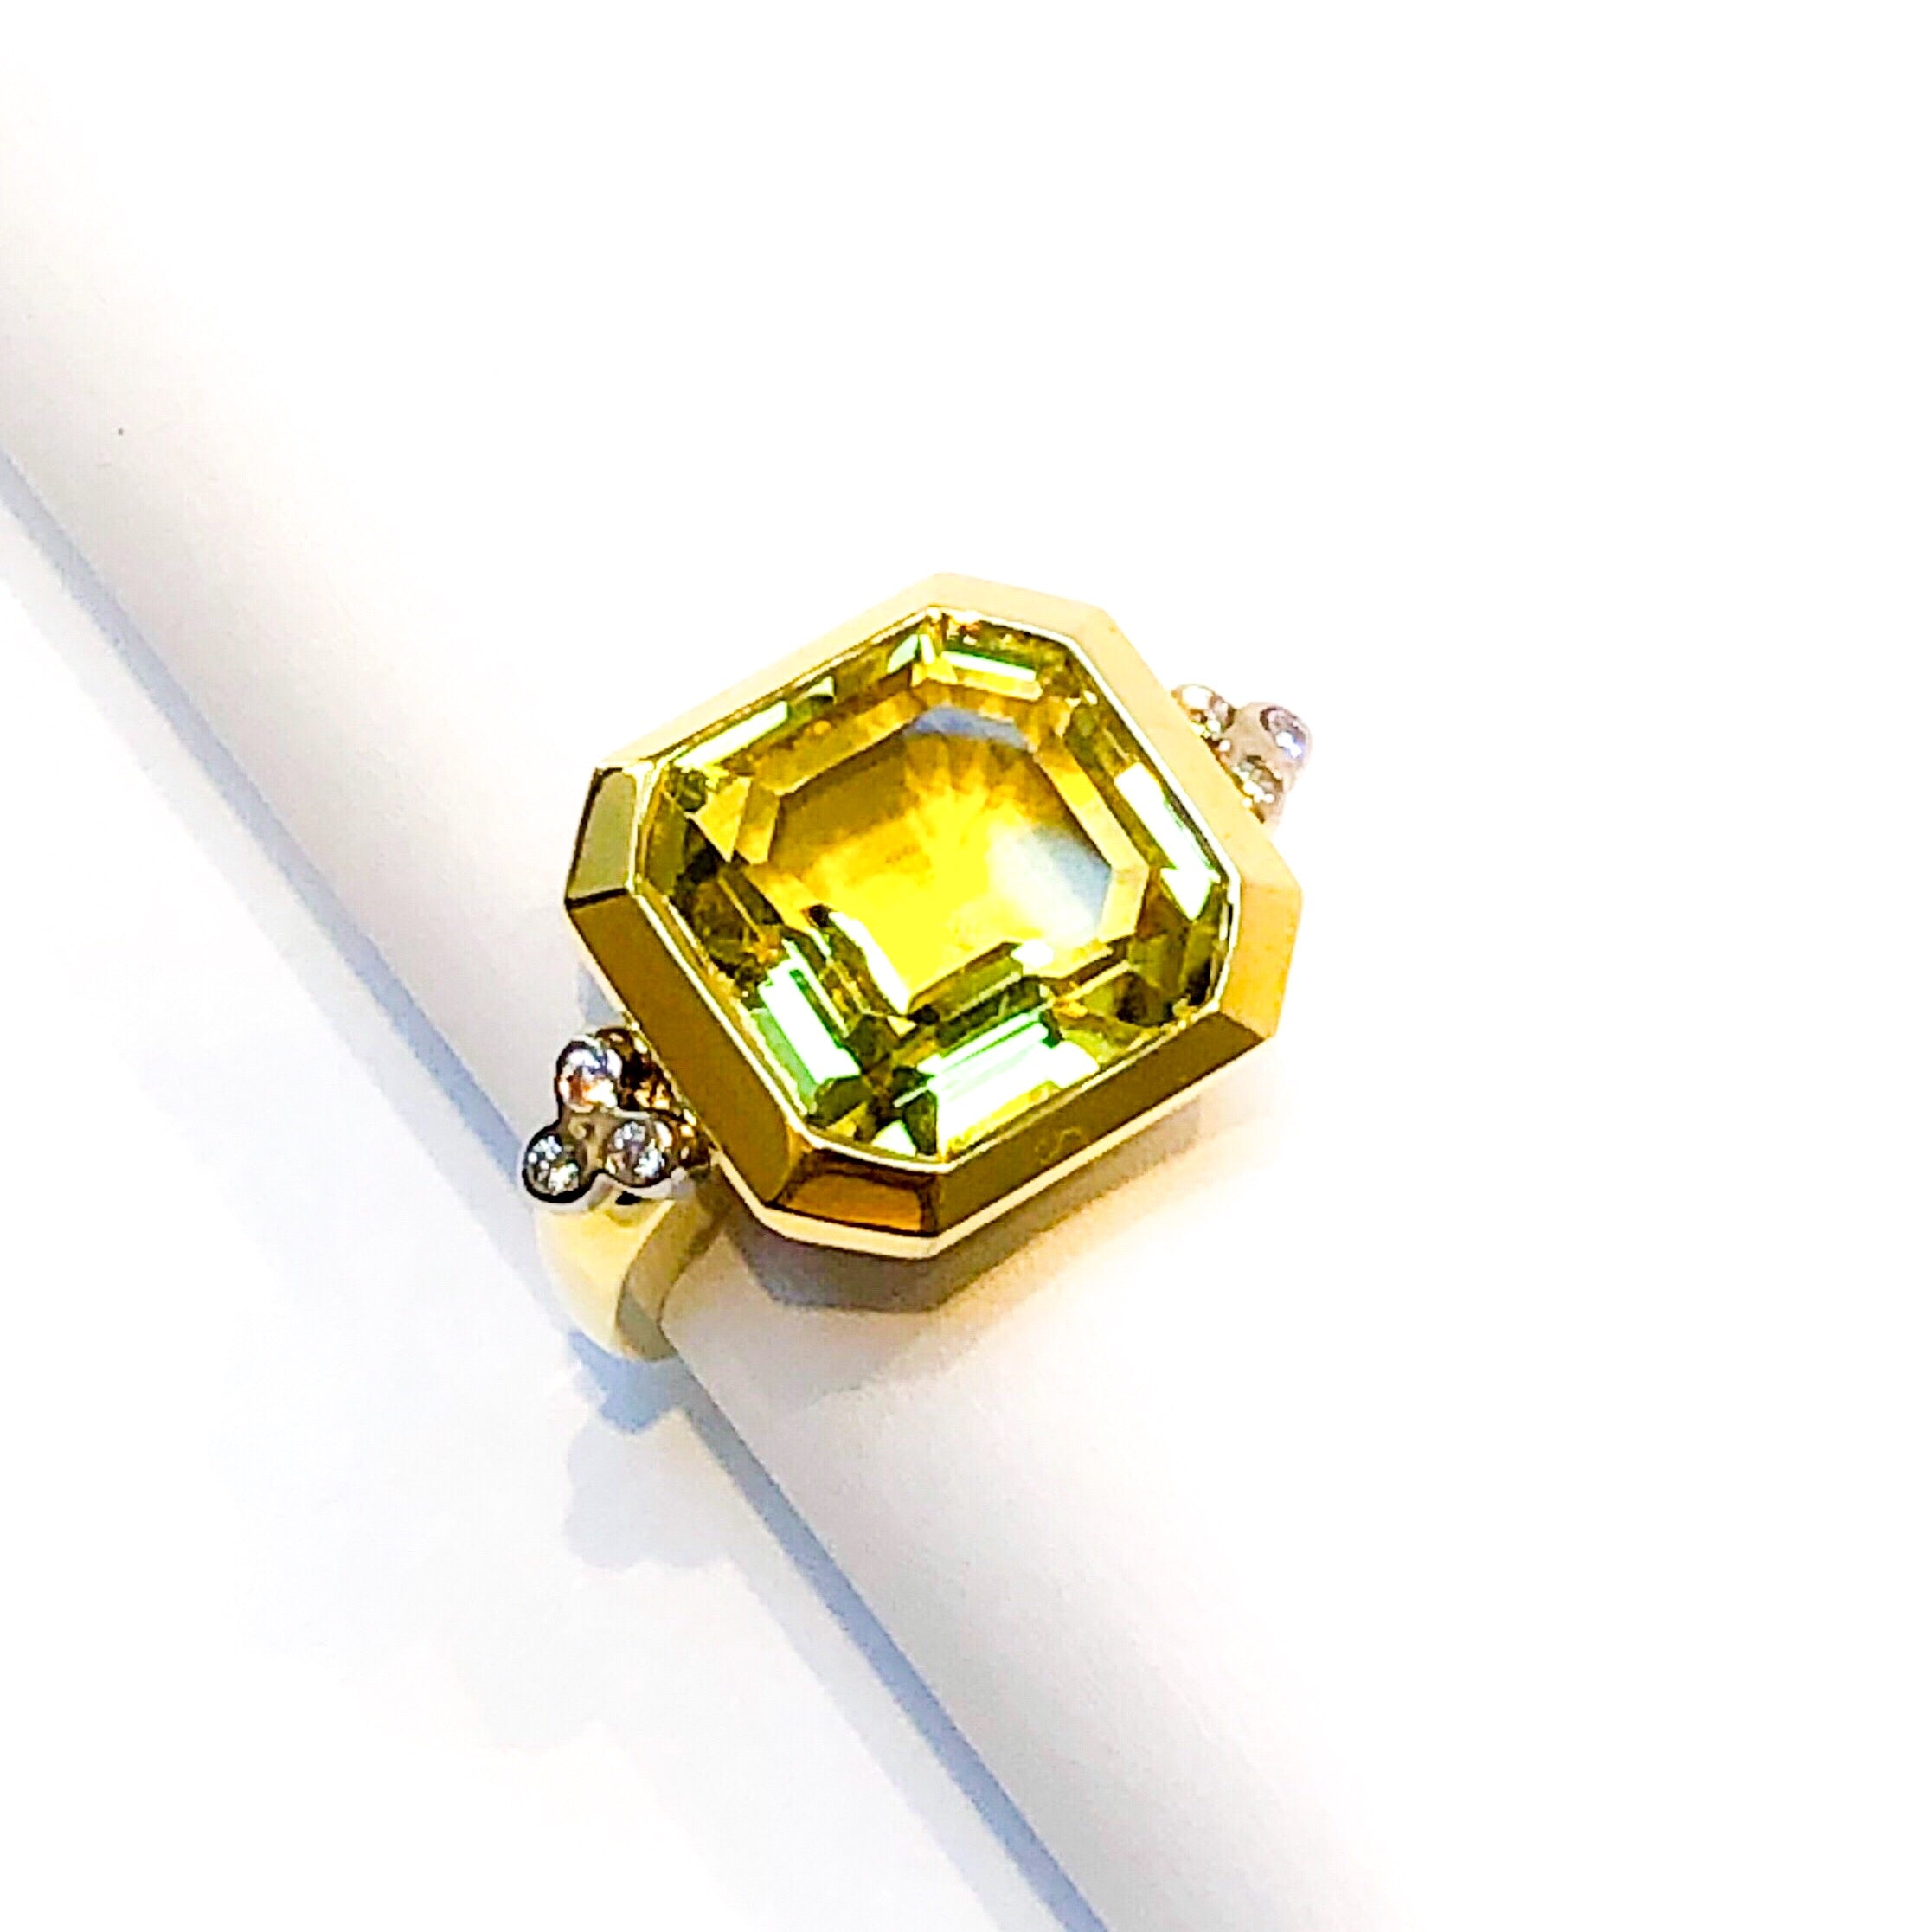 Yellow Gold and Lemon Citrine Ring